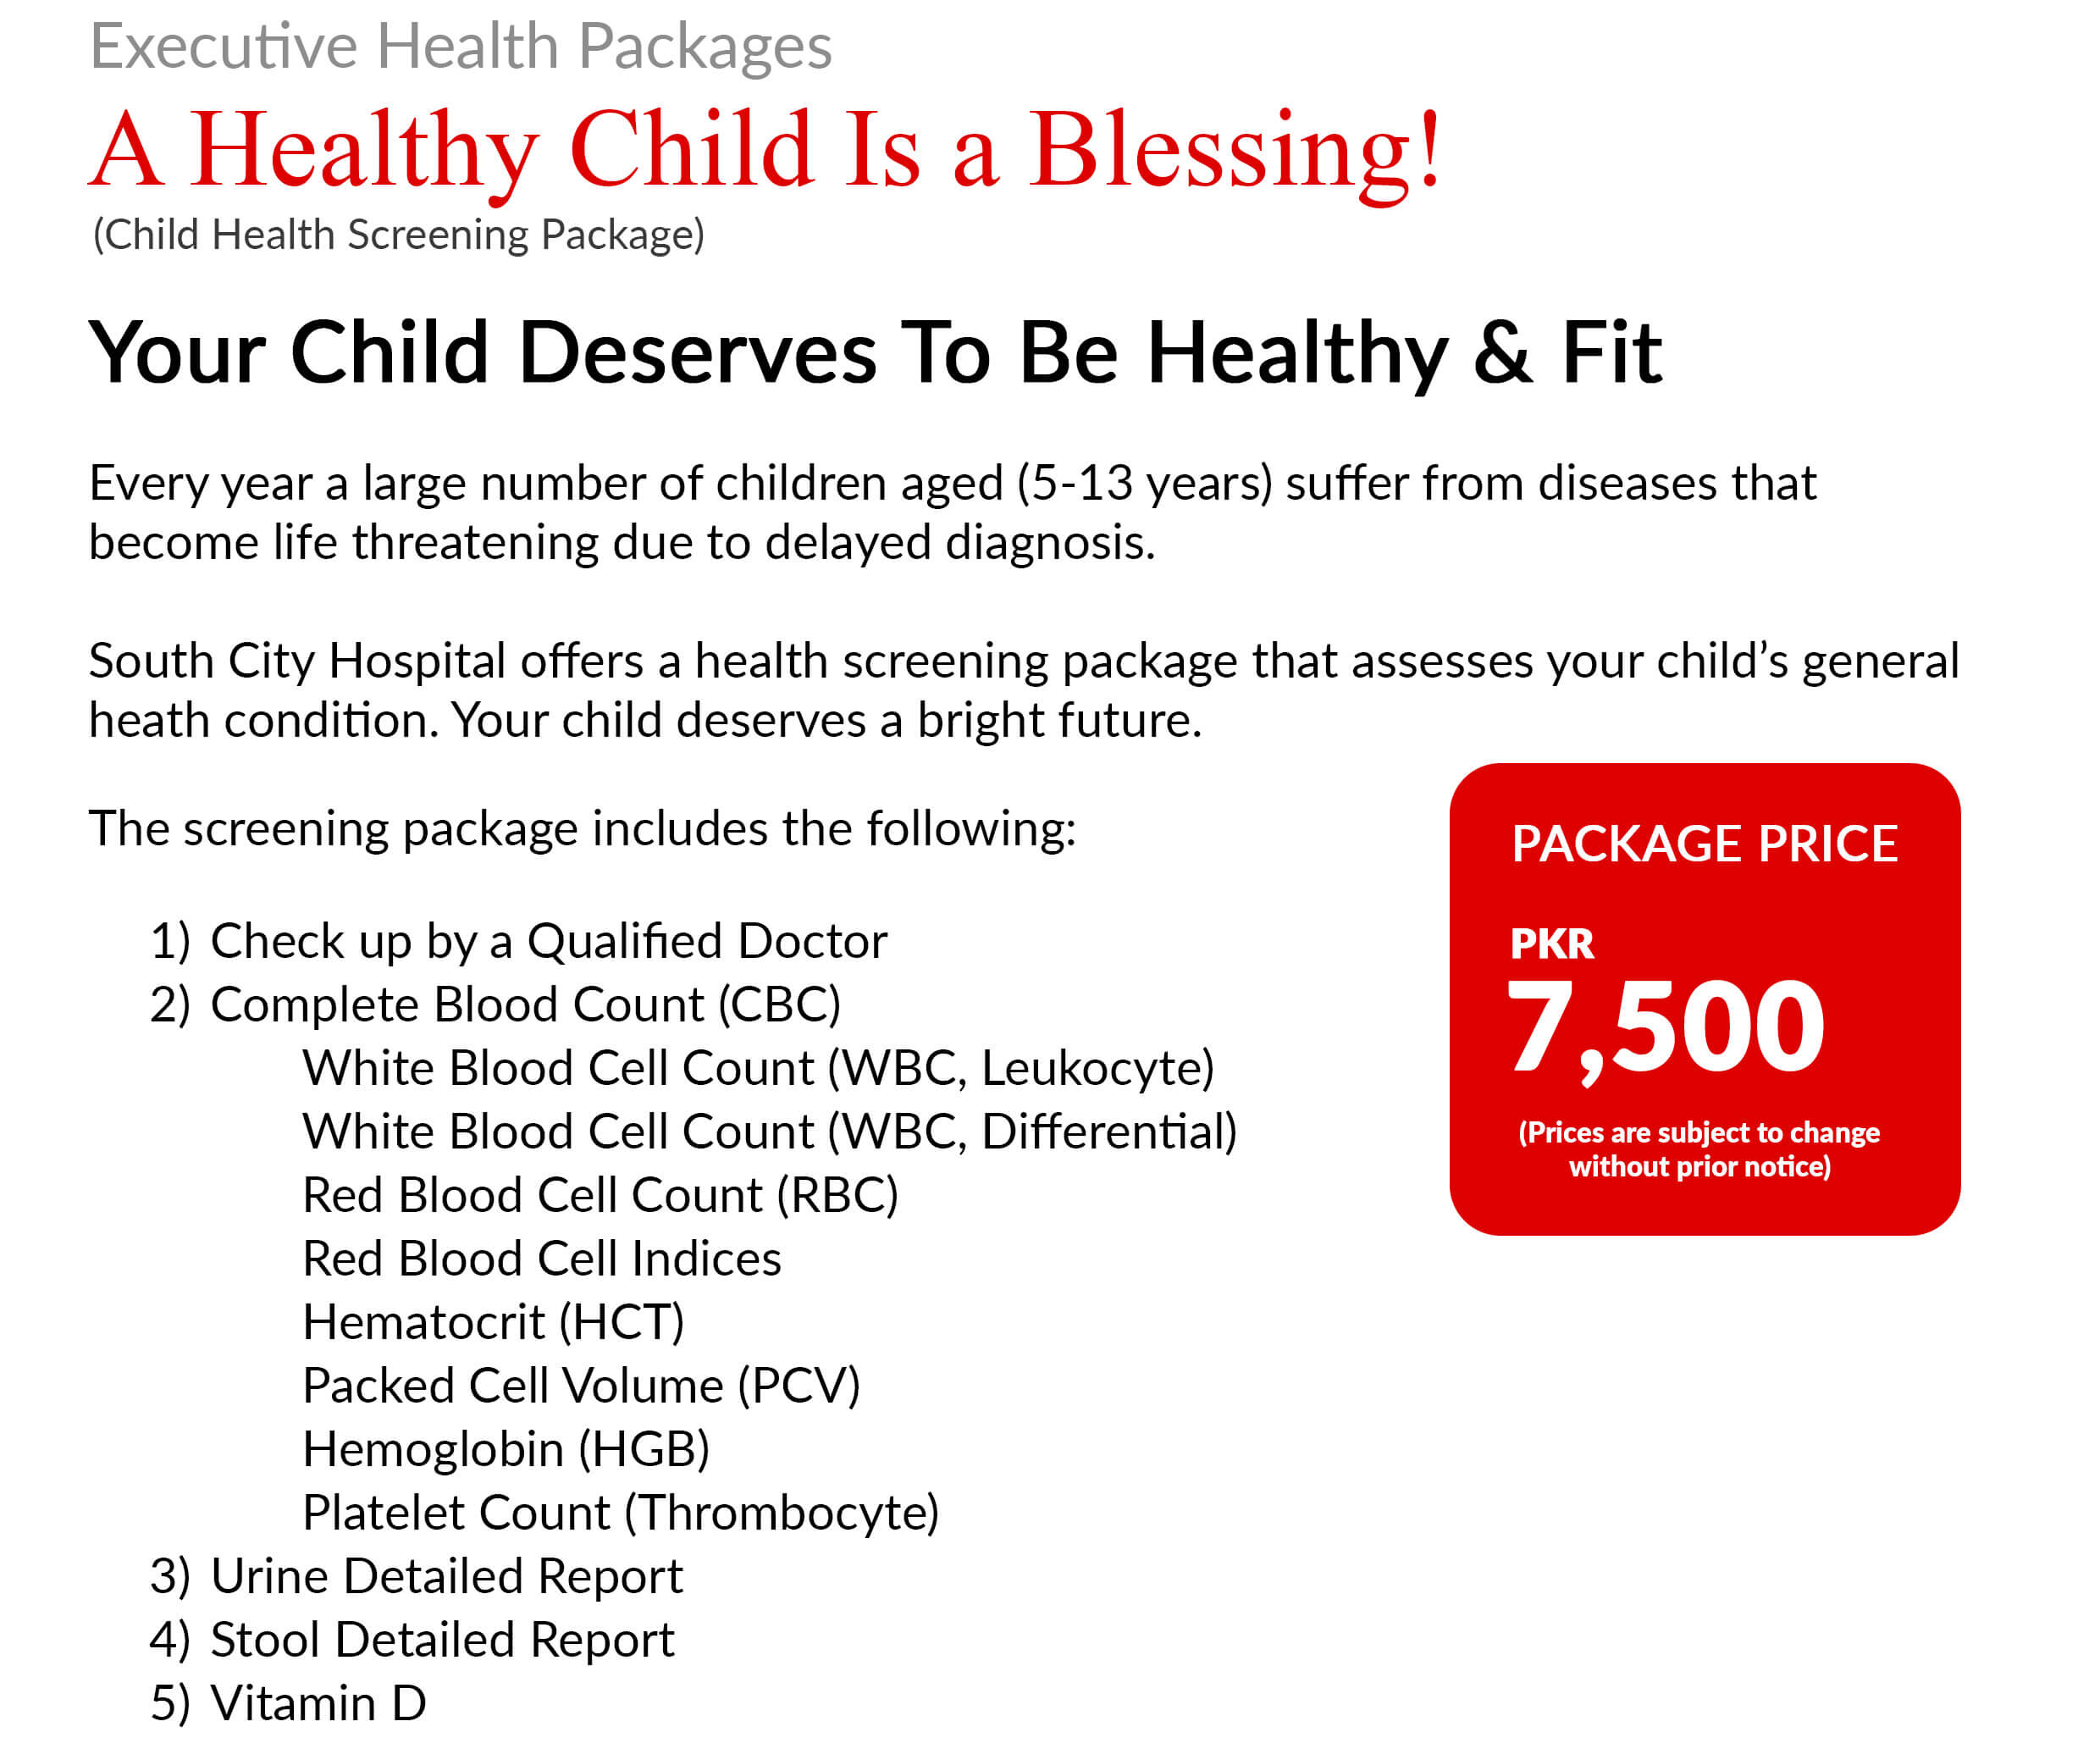 child health screening package